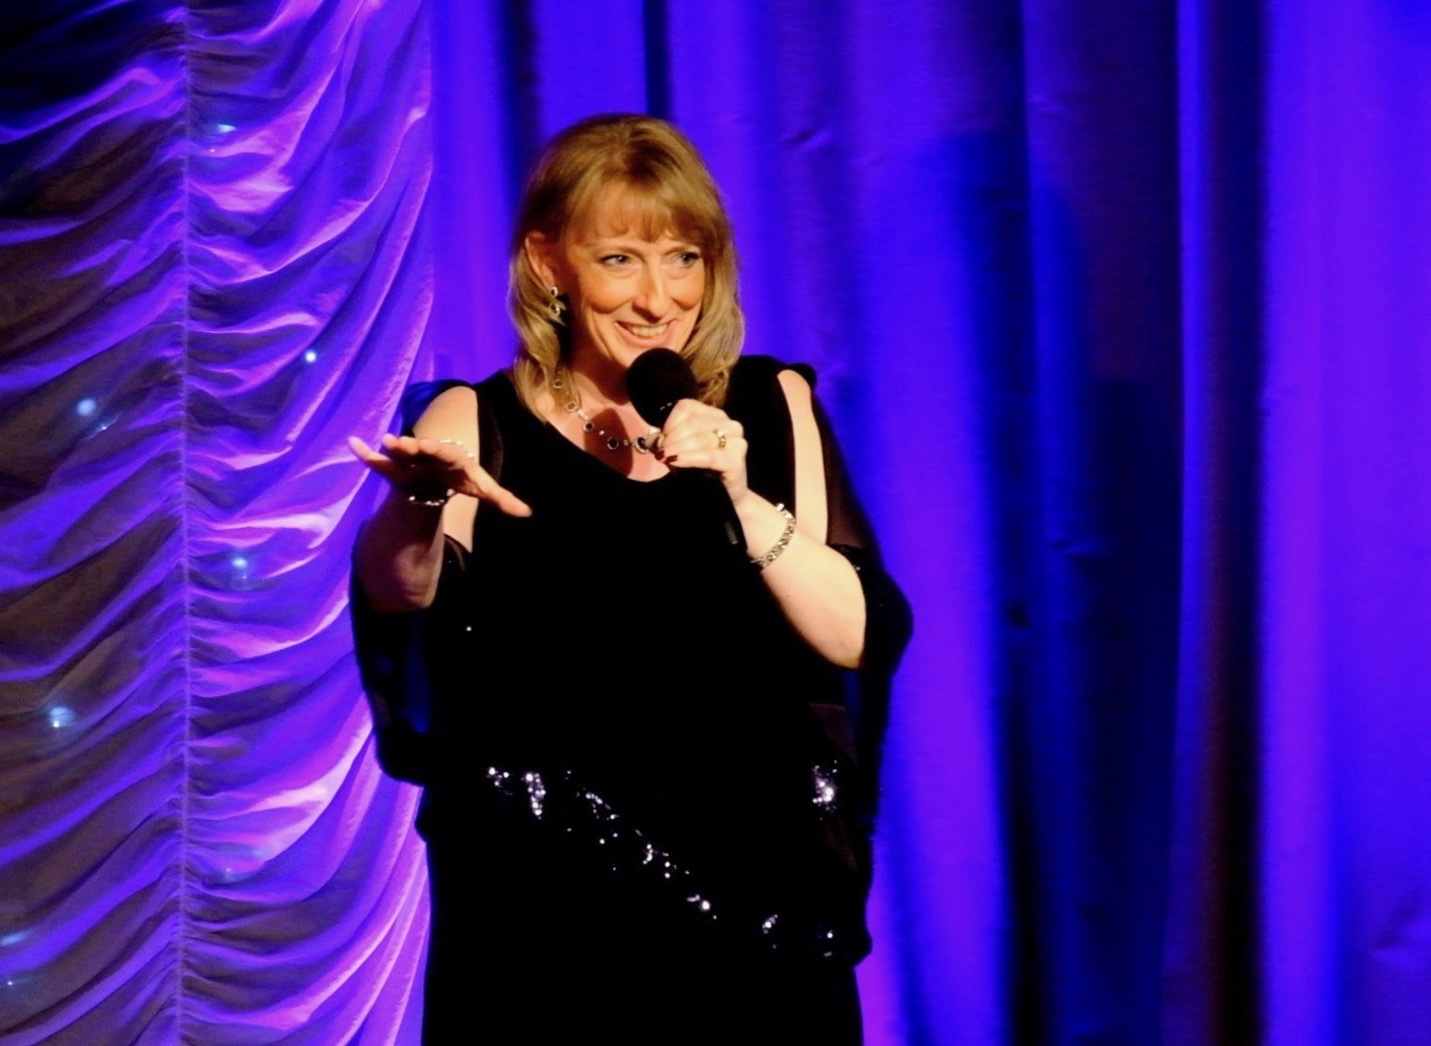 Alison Rume's one-woman show celebrates iconic divas  Barbra Streisand, Liza Minnelli and Dame Shirley Bassey.